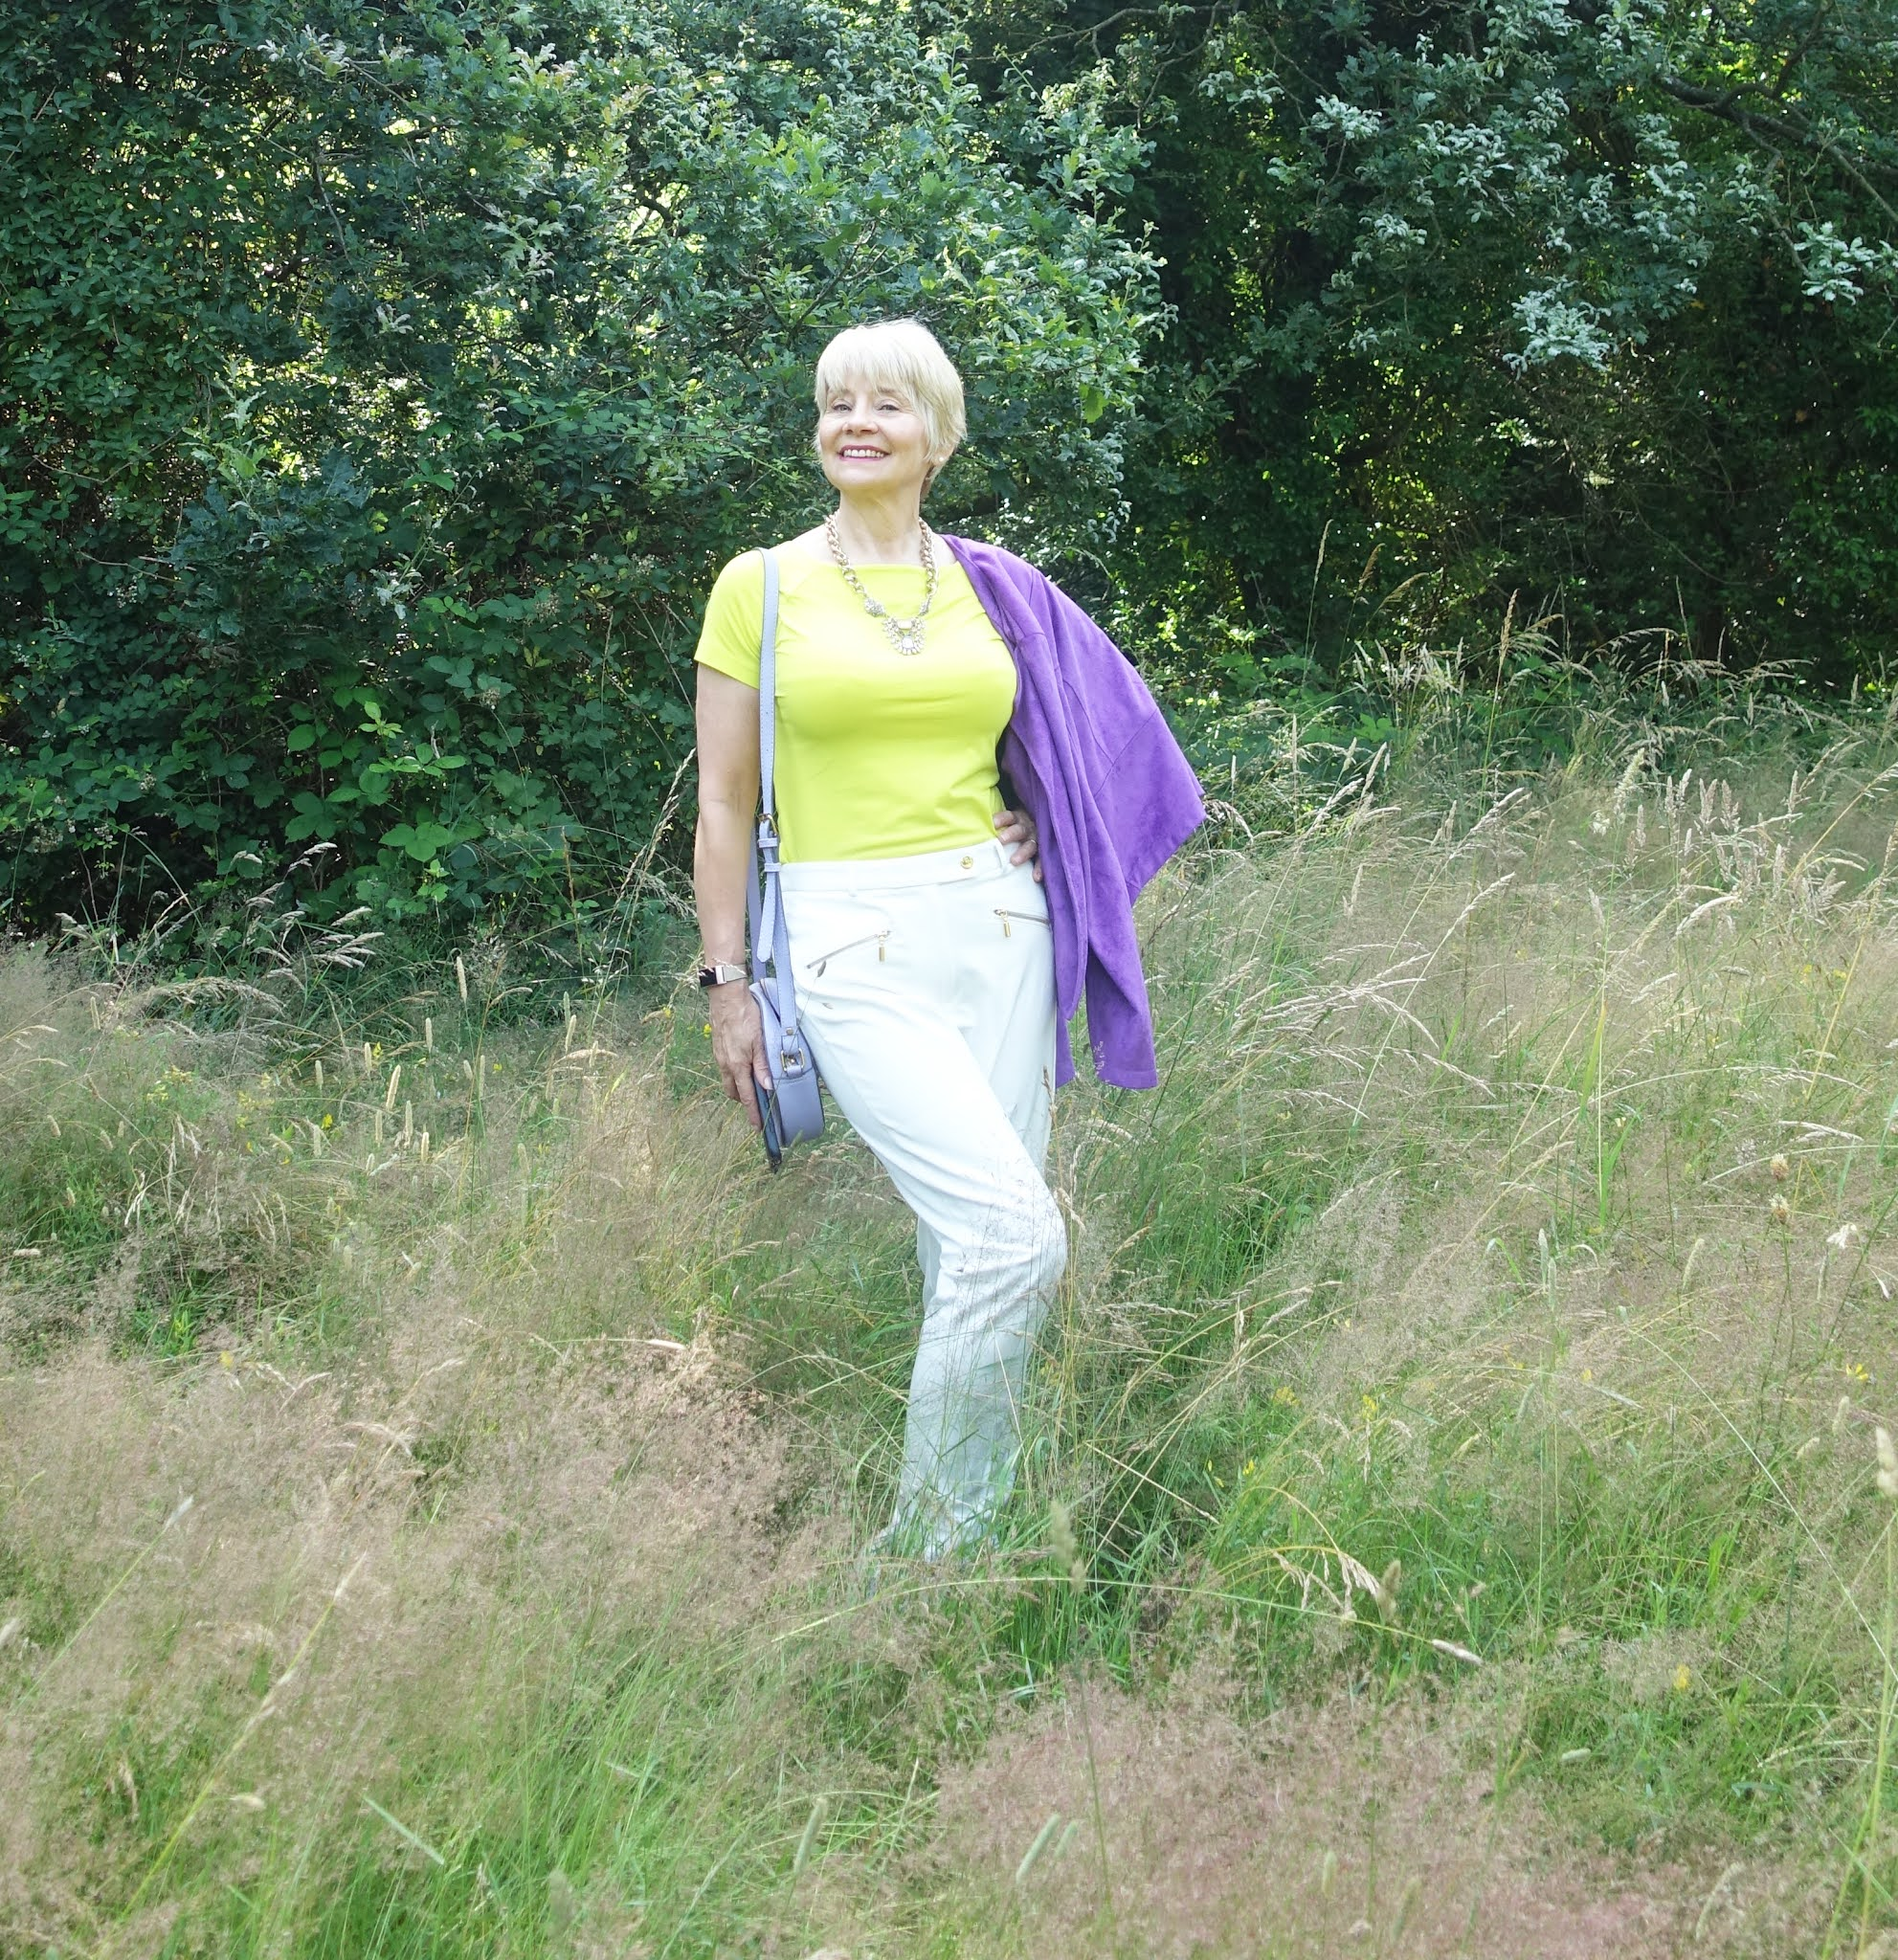 Posing in the grasses in Epping Forest, Is This Mutton blogger Gail Hanlon in the Style Not Age Challenge Jackets for July